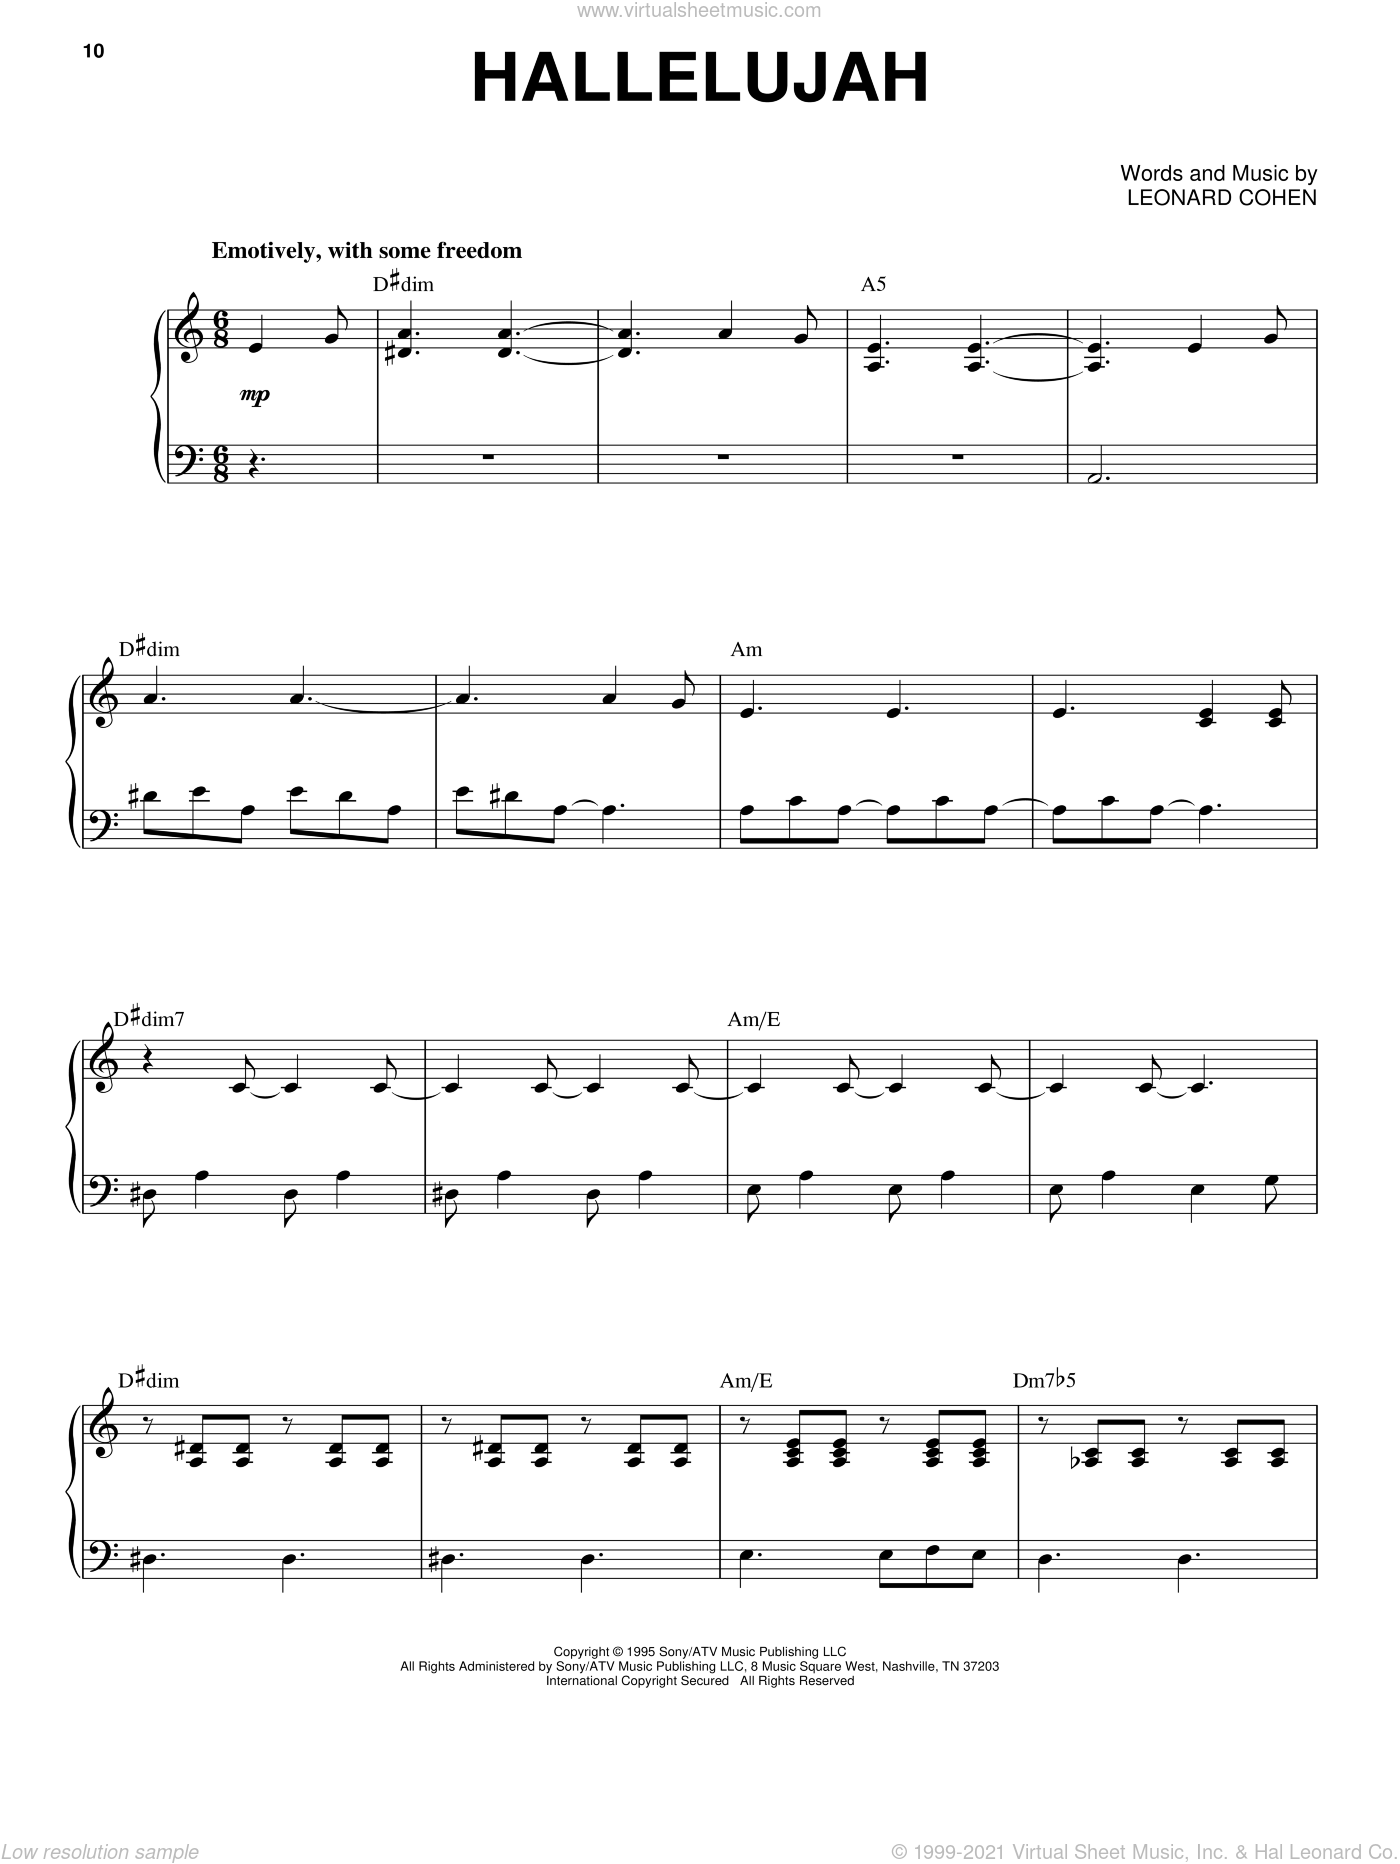 Hallelujah sheet music for voice and piano by Leonard Cohen, intermediate skill level